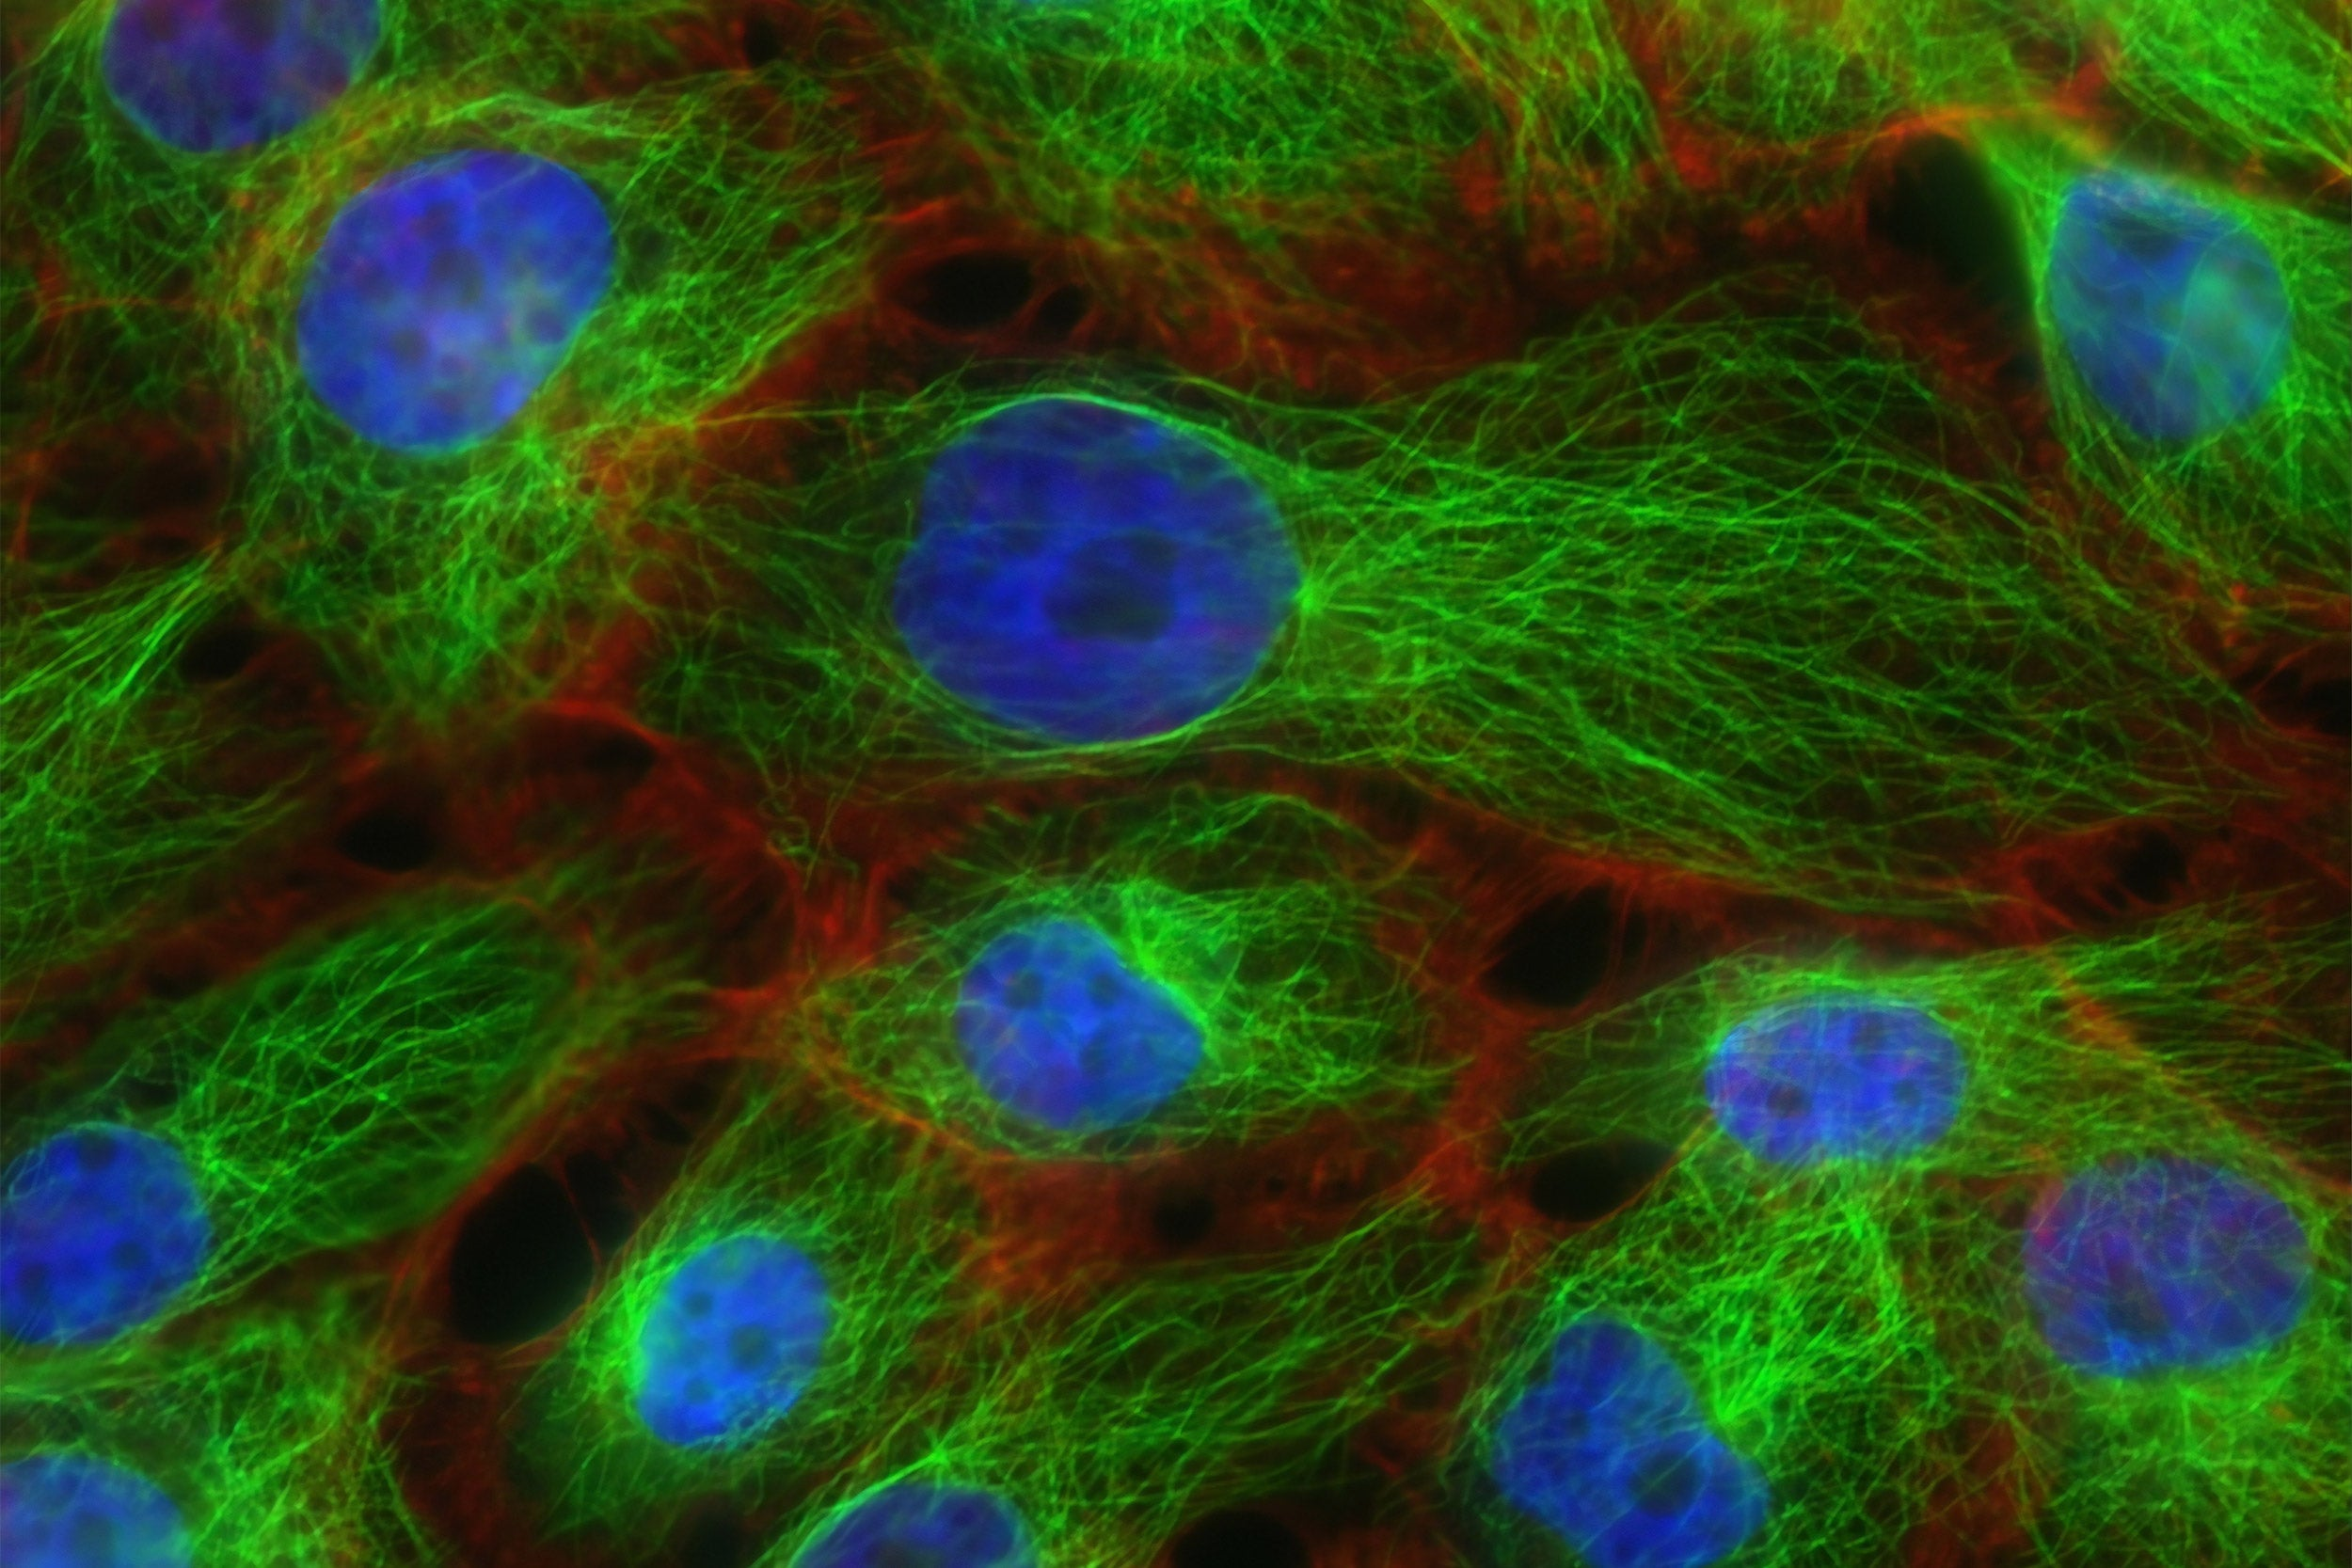 Human breast cancer cells.